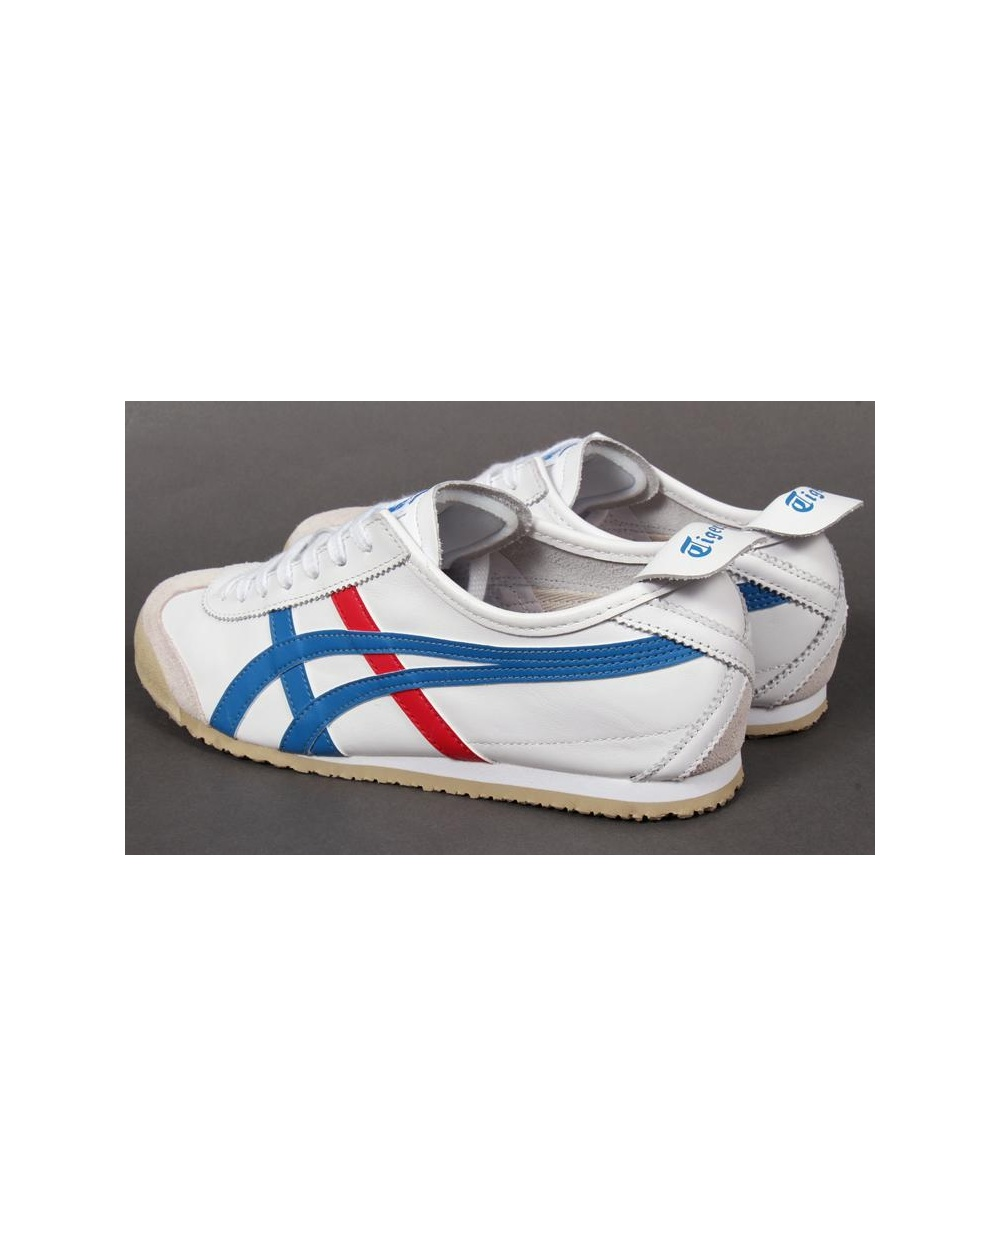 timeless design ce94d 23de9 Onitsuka Tiger Mexico 66 Trainers White/blue/red